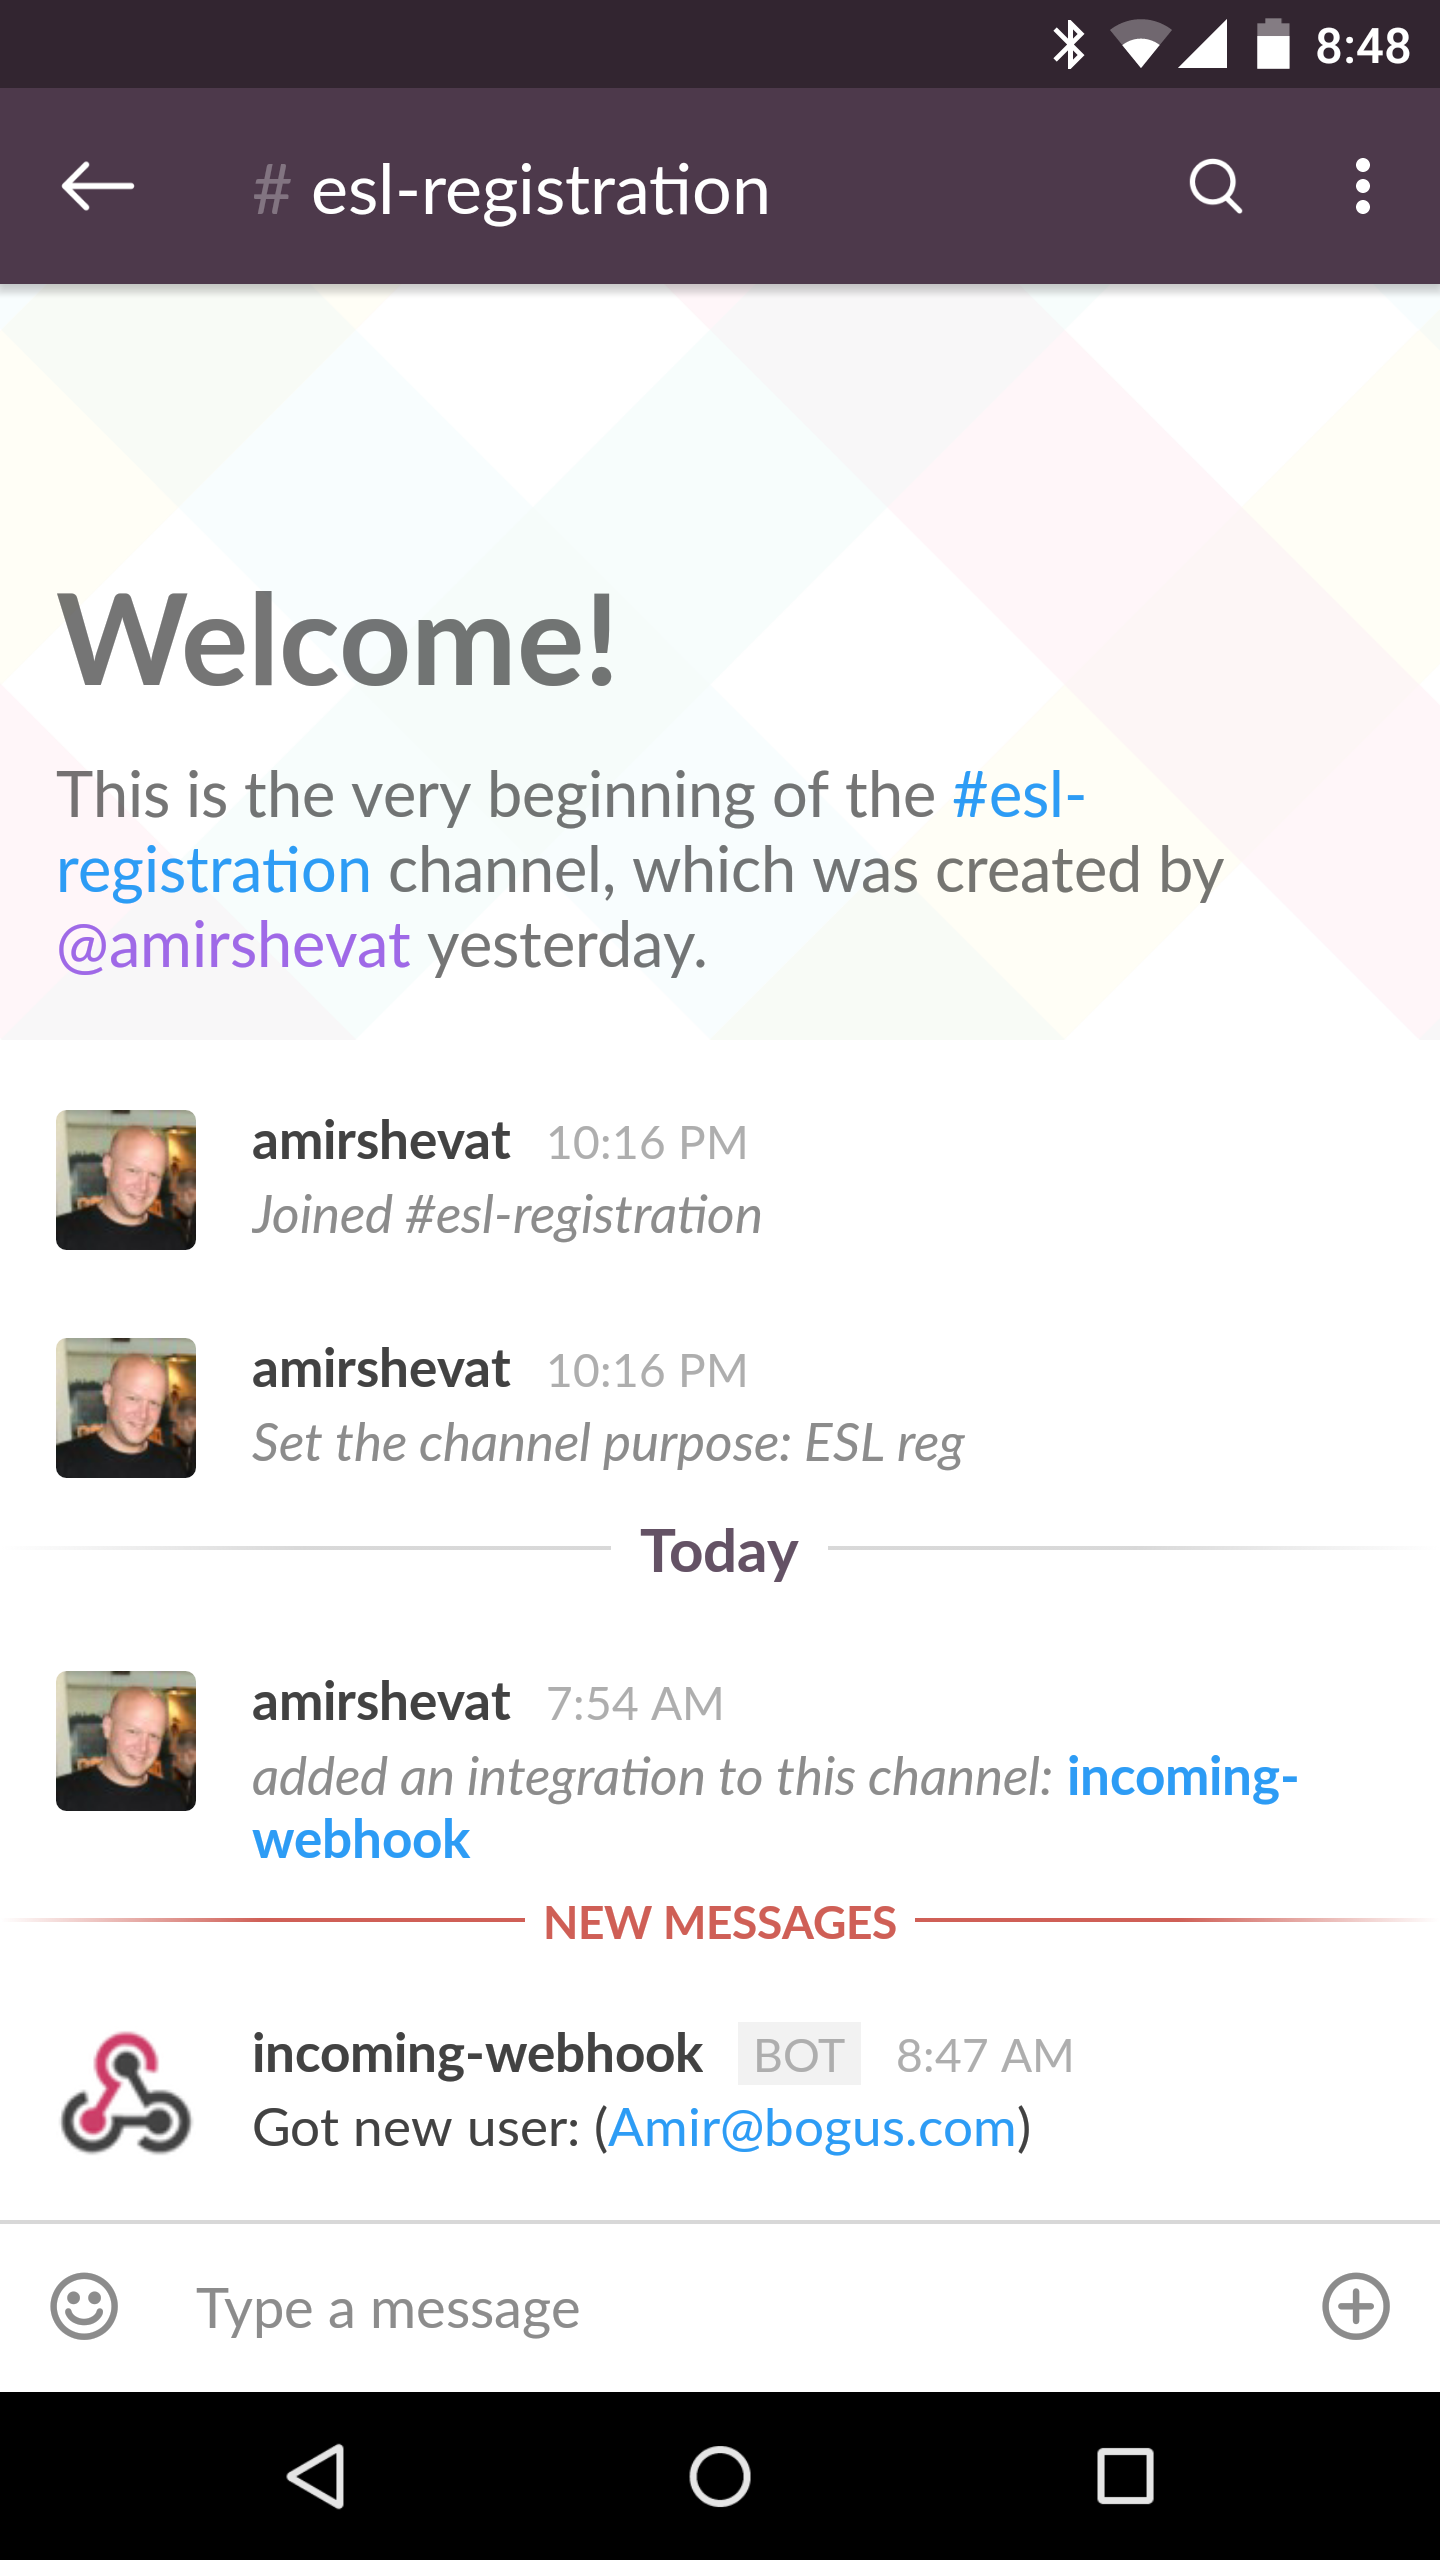 How to: Use Slack API to Get Notification When Something